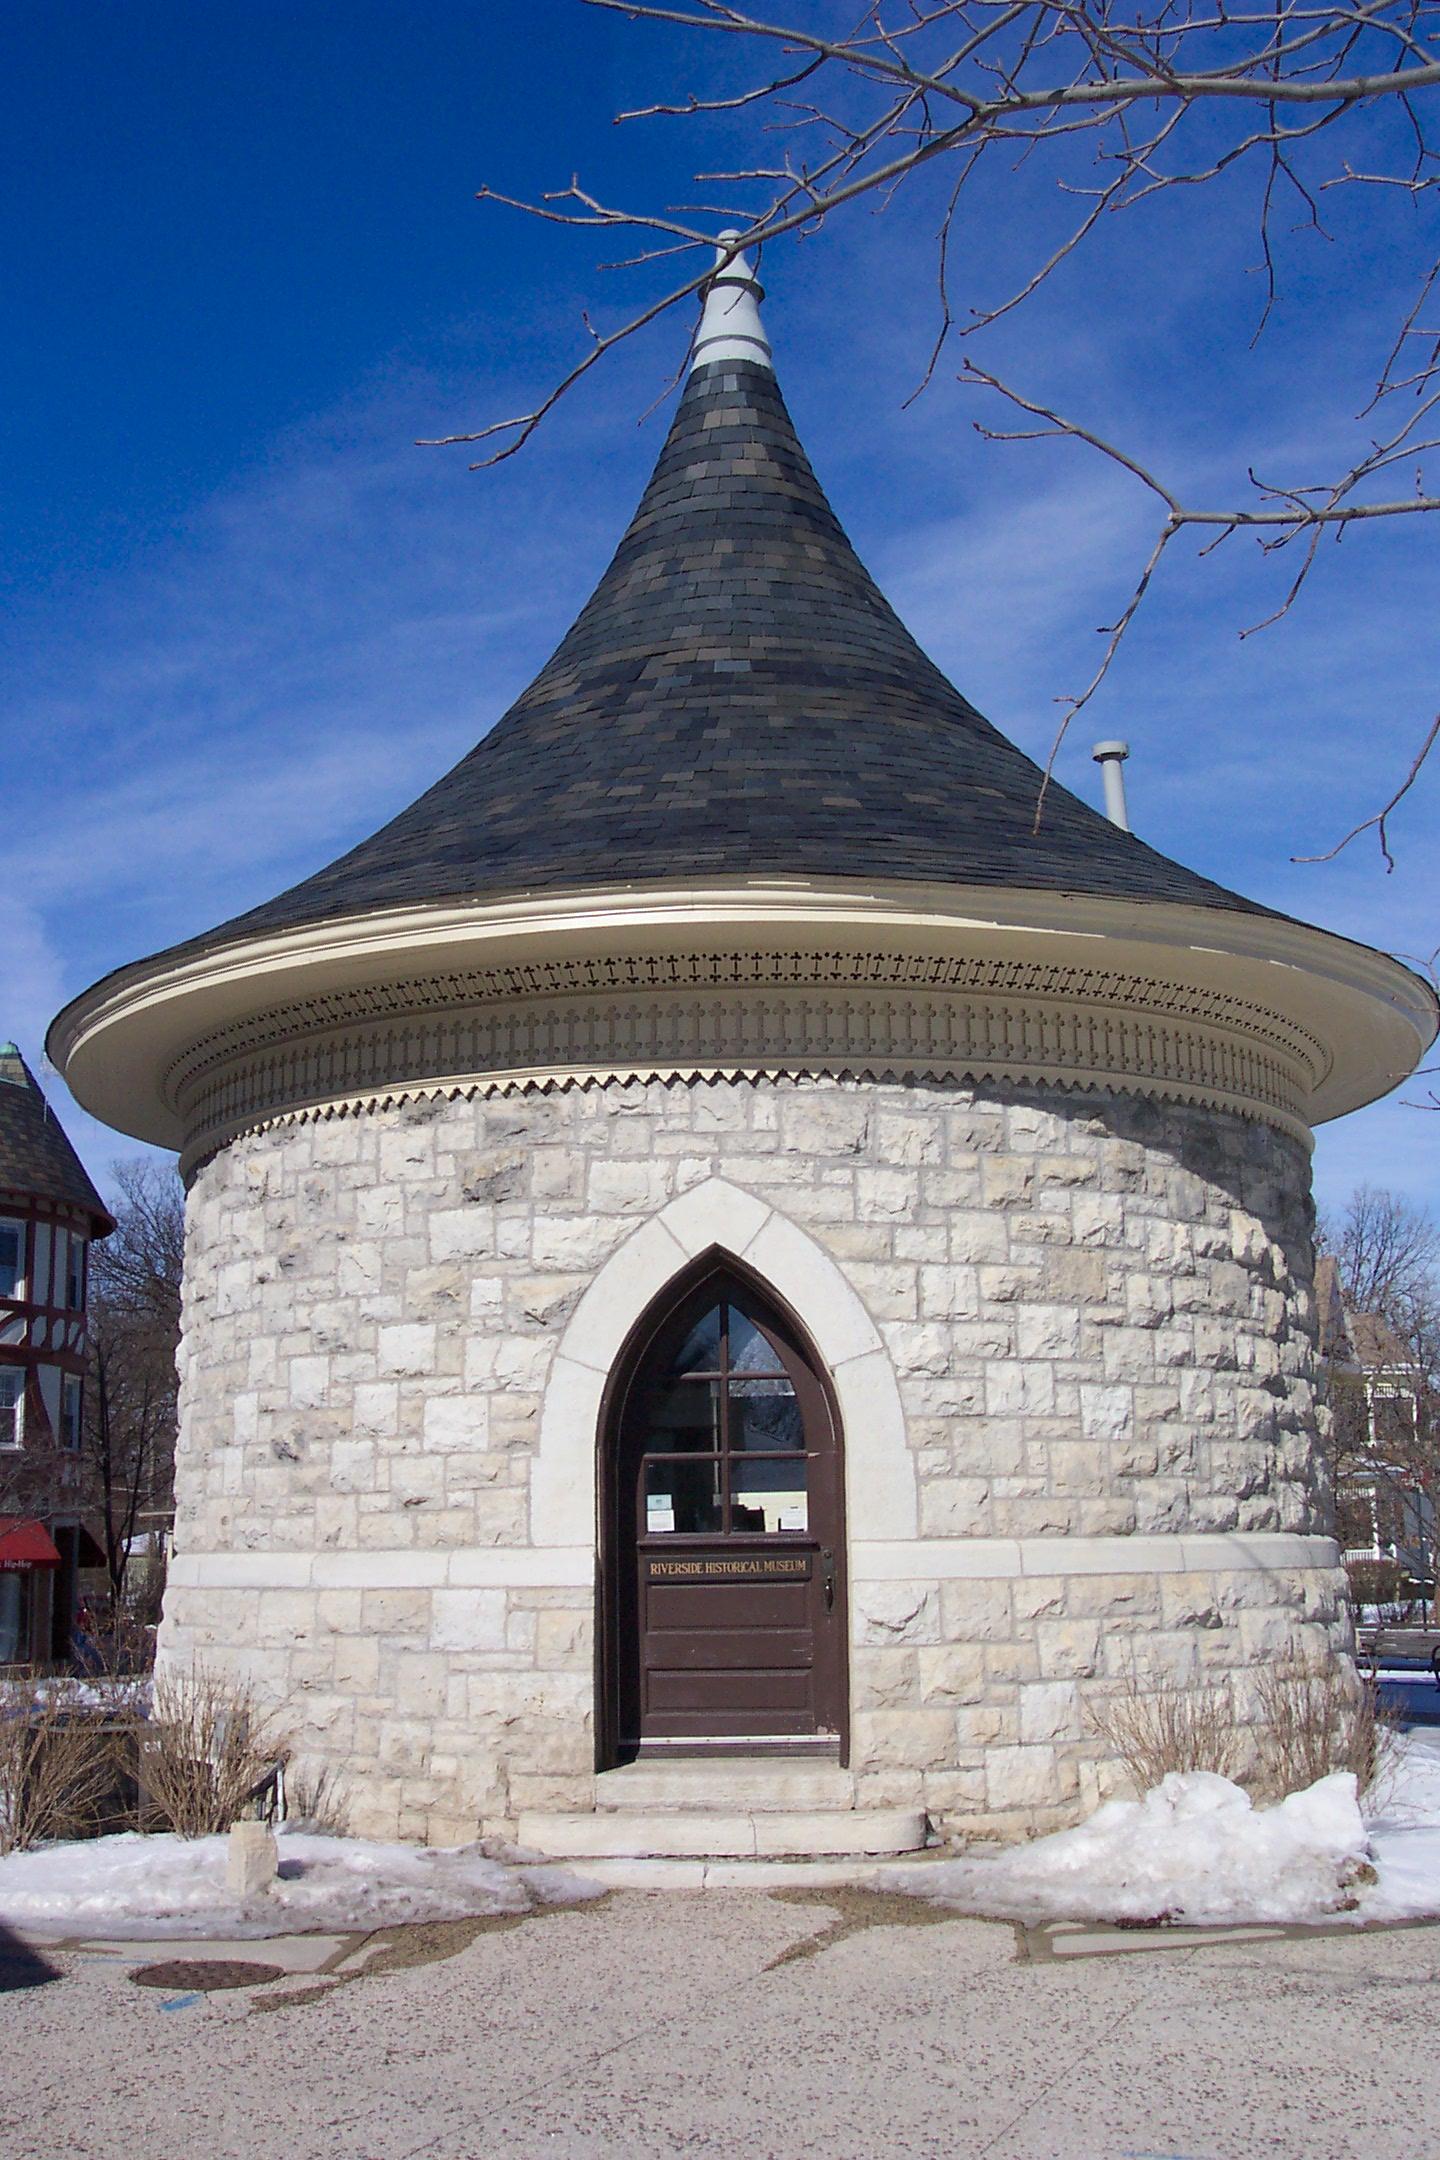 The Riverside Water Tower (1870), the symbolic centerpiece of Riverside, was recently restored and now provides a venue for the Riverside Museum to display exhibits on local history.